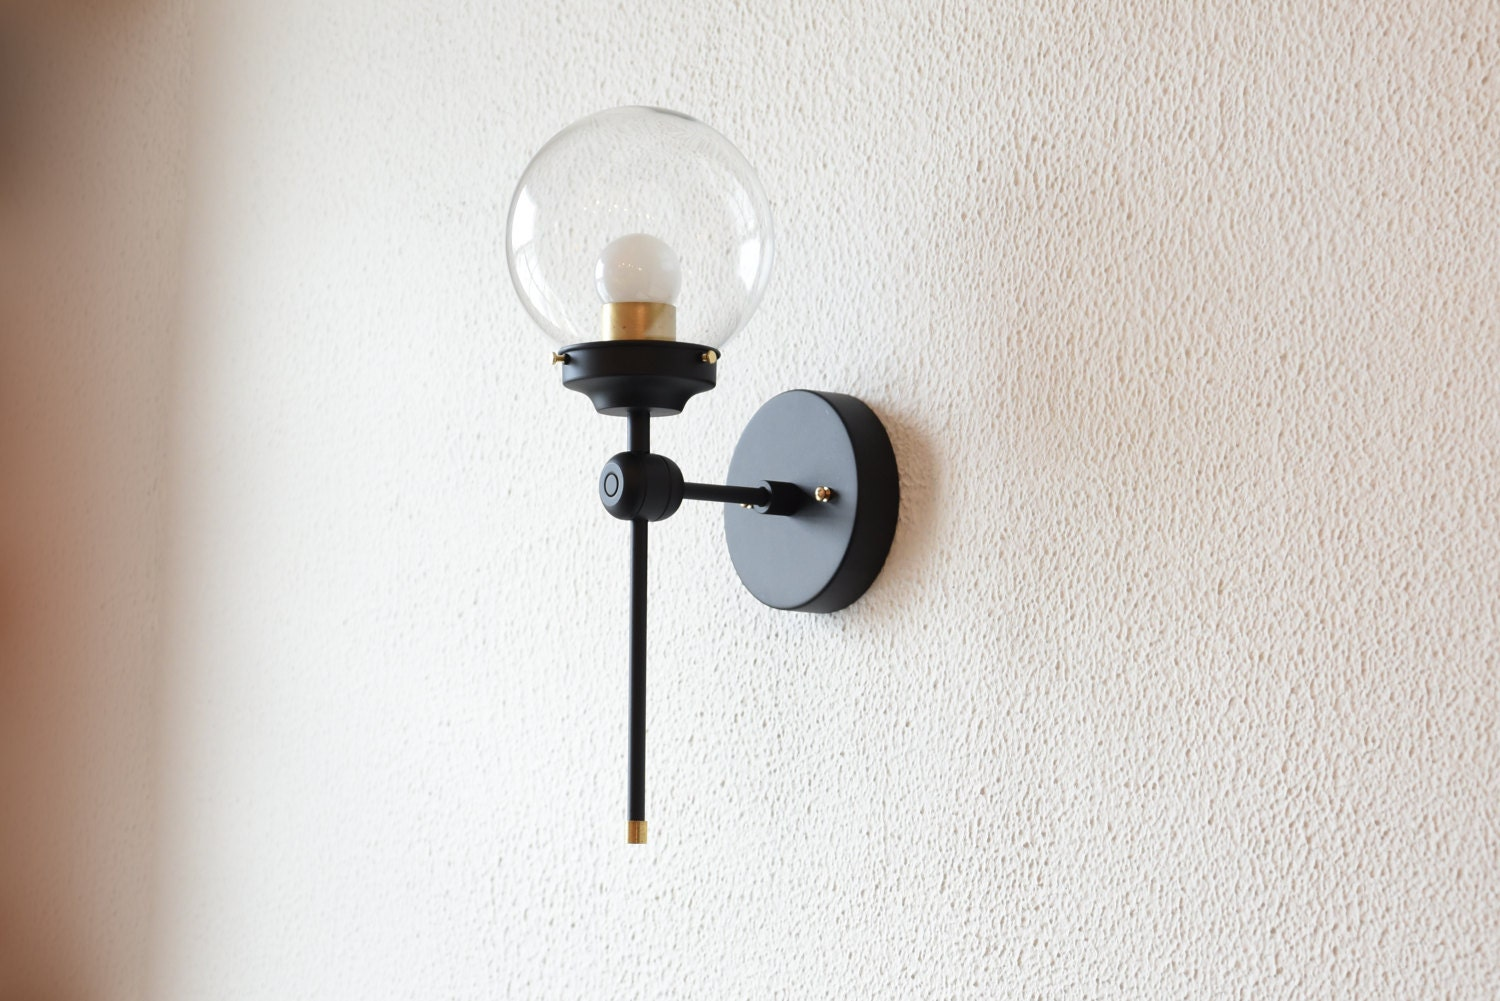 Free shipping single light wall sconce black and gold brass globe single light wall sconce black and gold brass globe modern abstract mid century industrial vanity light bathroom ul listed mozeypictures Choice Image